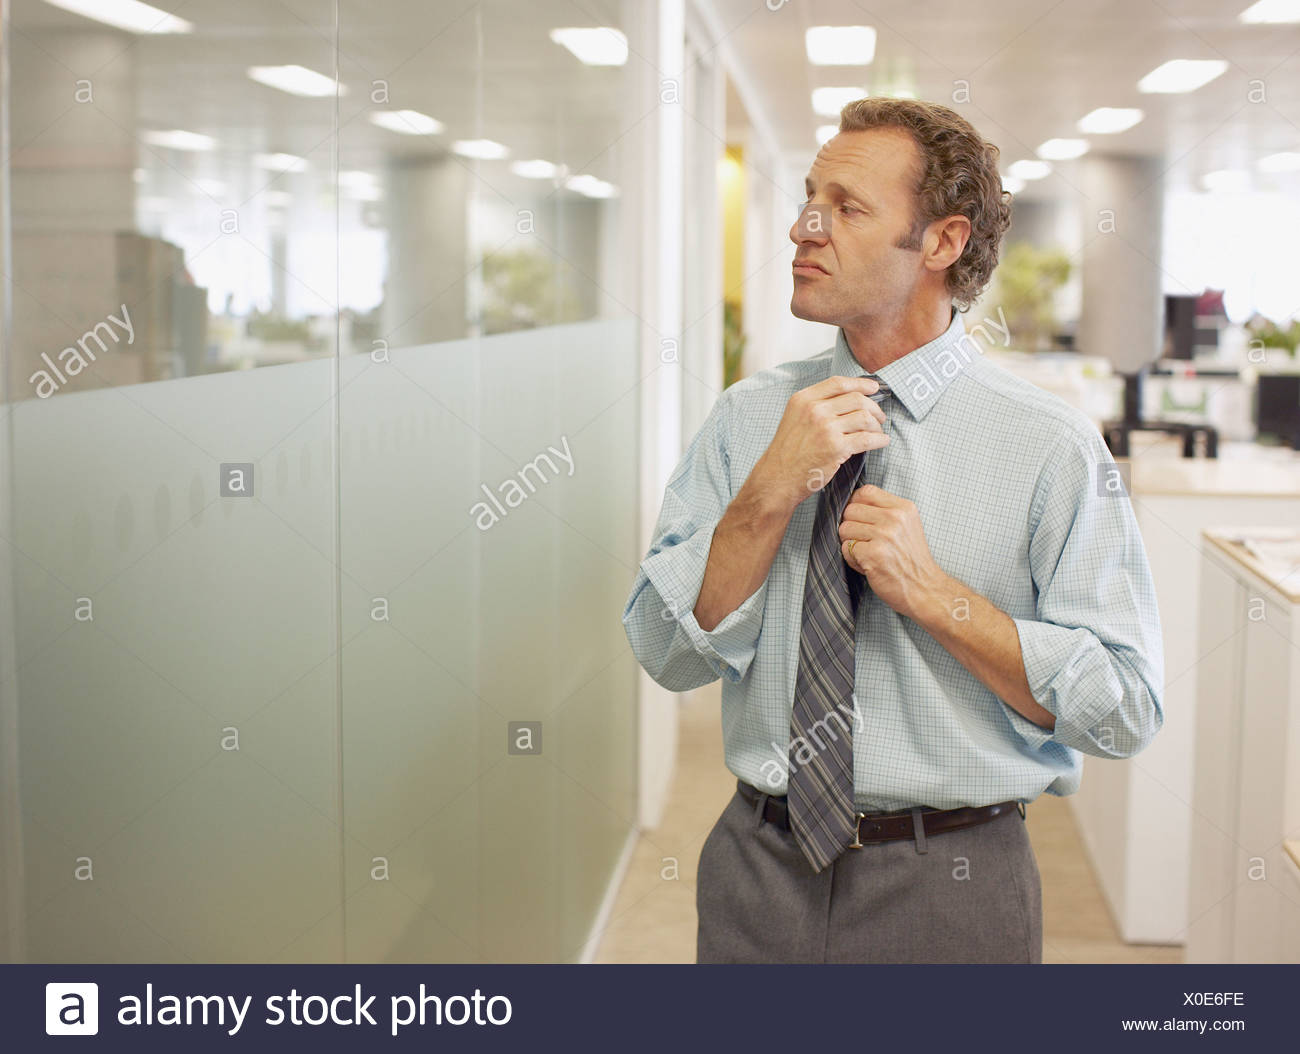 Businessman adjusting tie in office - Stock Image